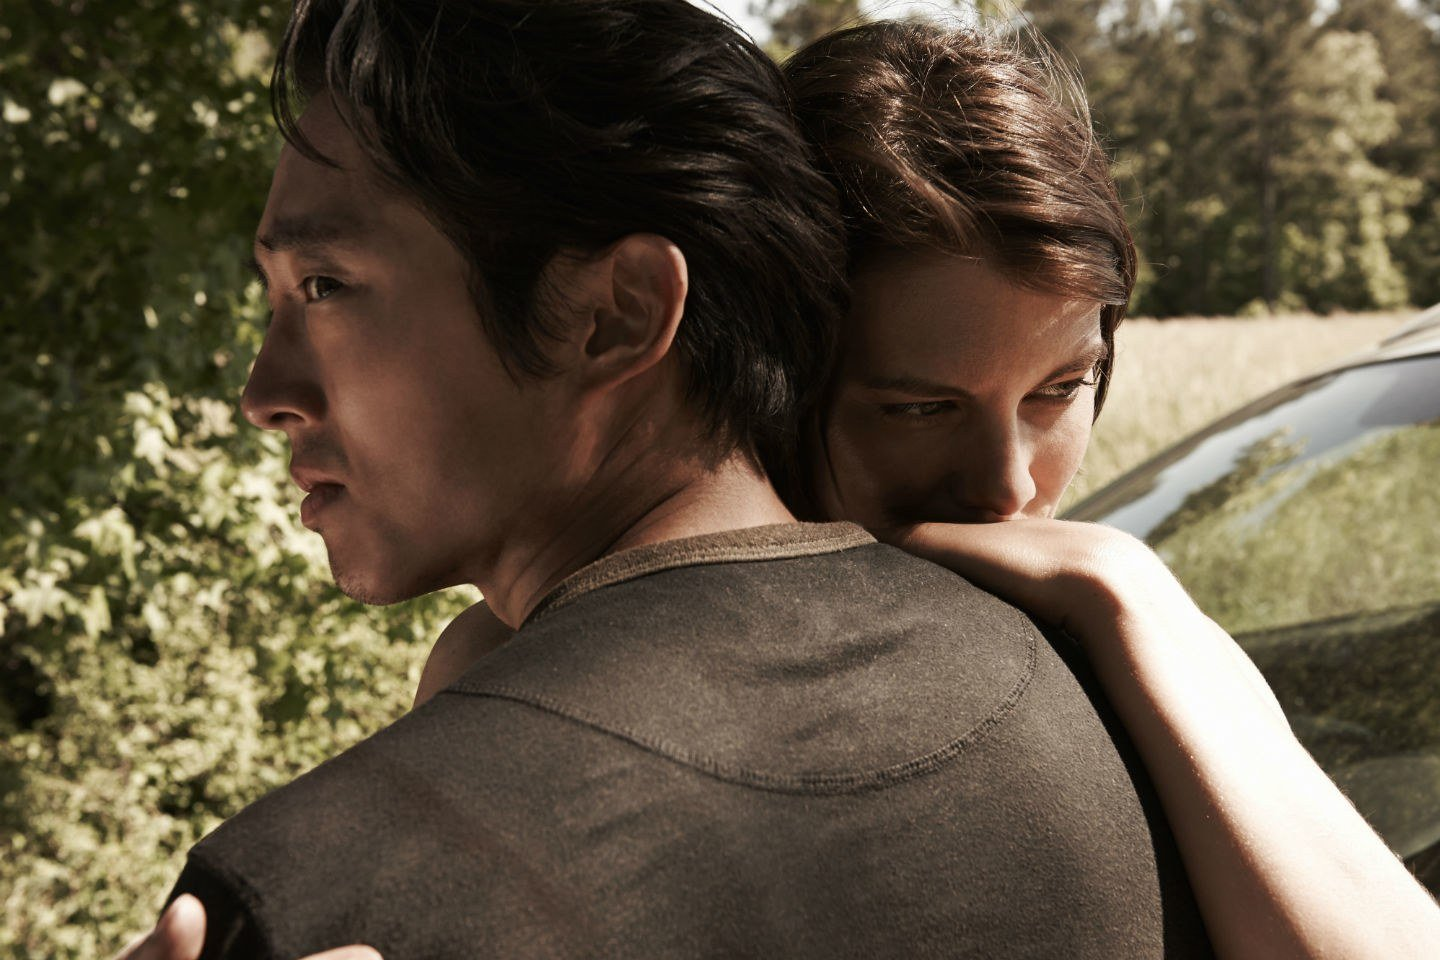 Glenn hugs Maggie while standing in front of trees